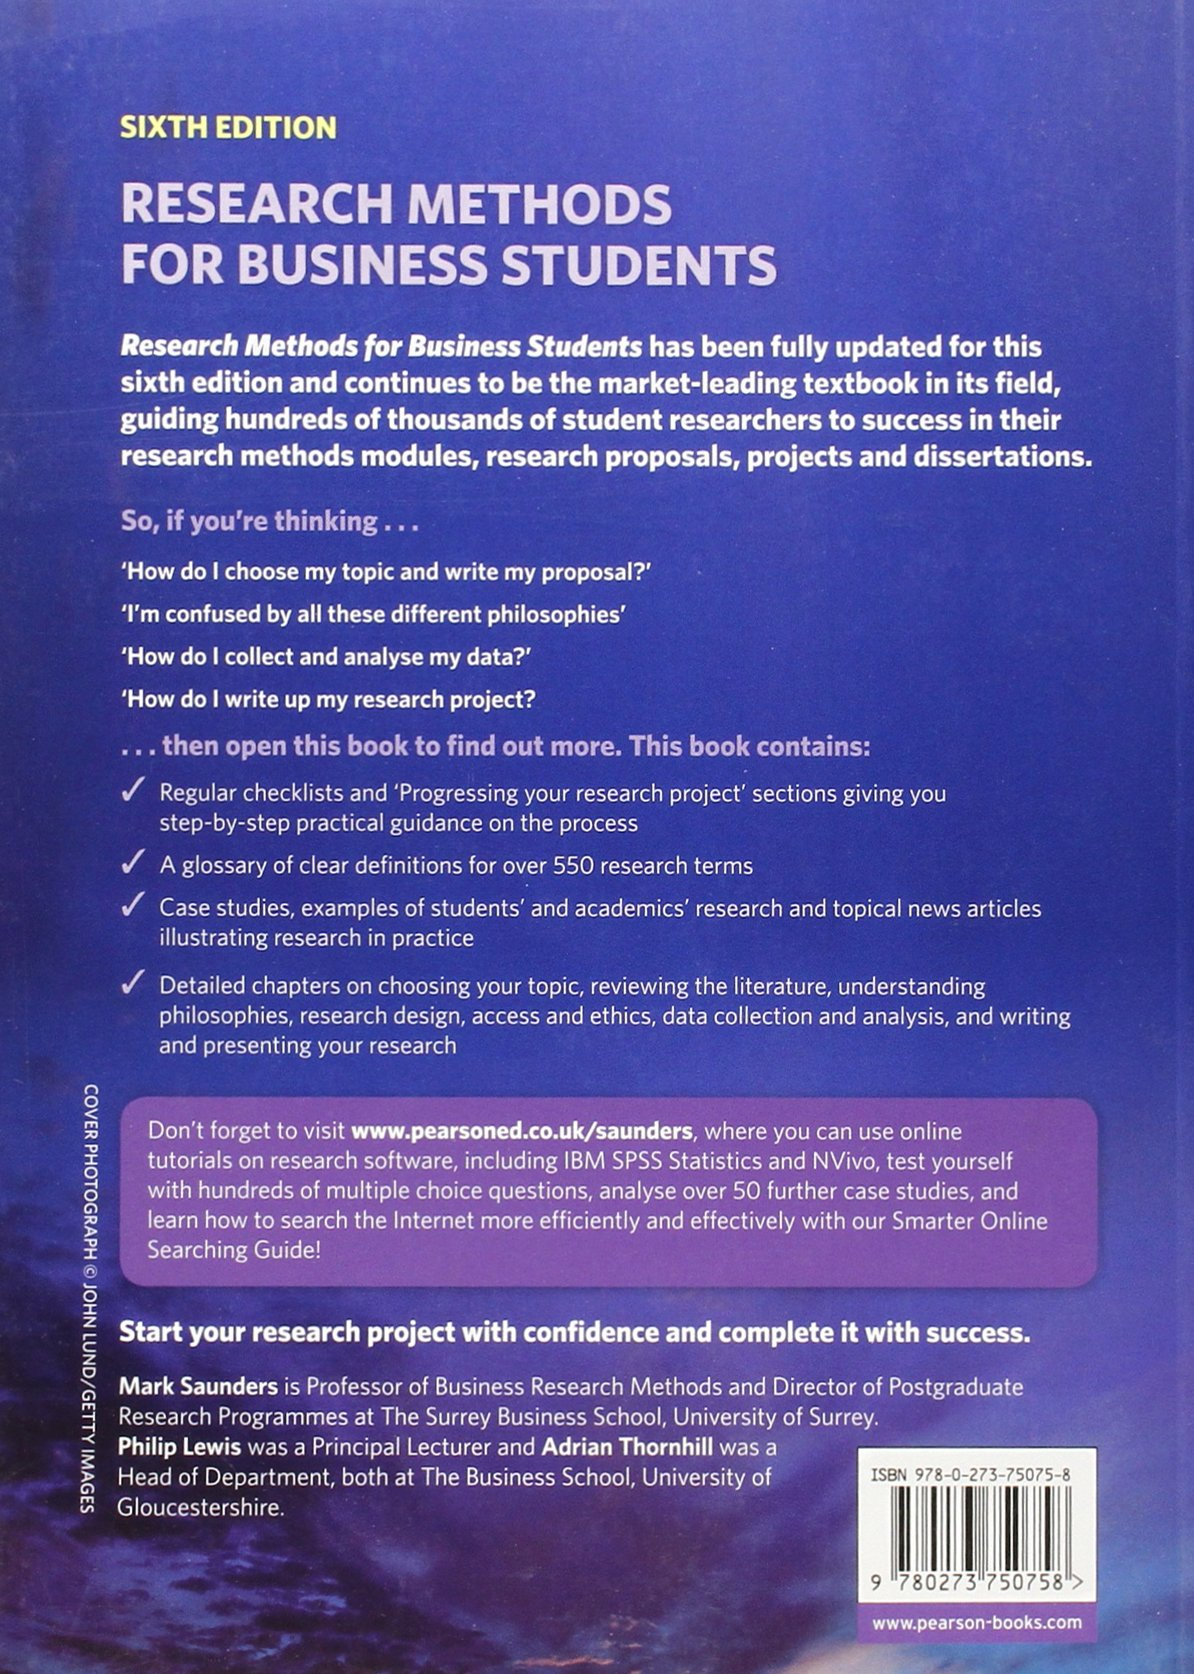 research methods for business students amazon co uk mark n k research methods for business students amazon co uk mark n k saunders philip lewis adrian thornhill 8601300177014 books